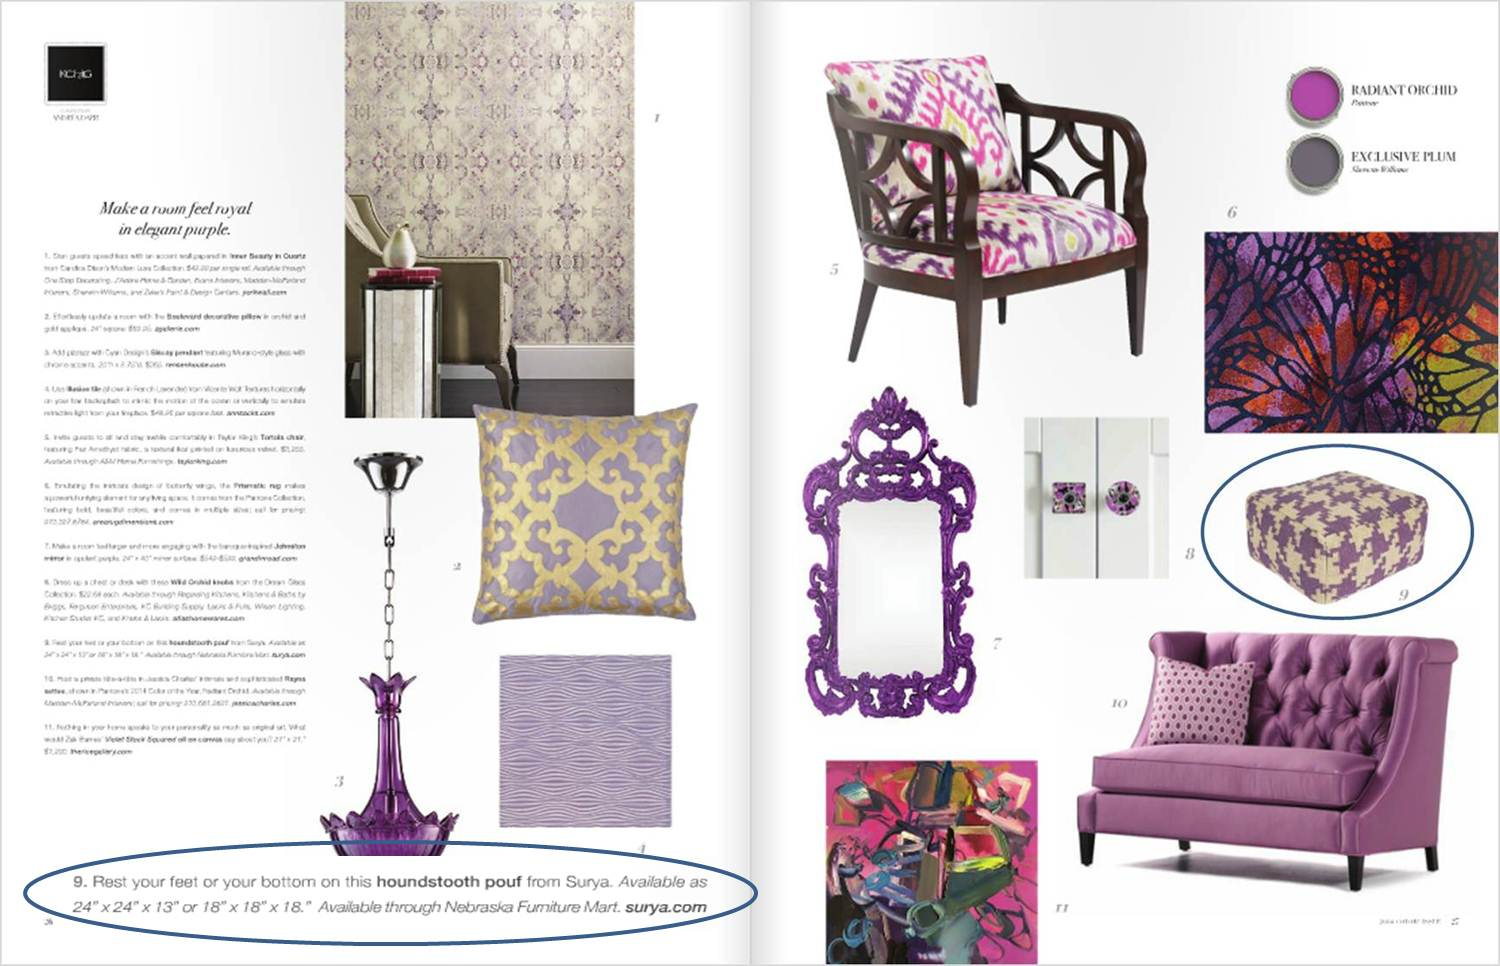 MAKE A ROOM FEEL ROYAL IN ELEGANT PURPLE 5.07.14